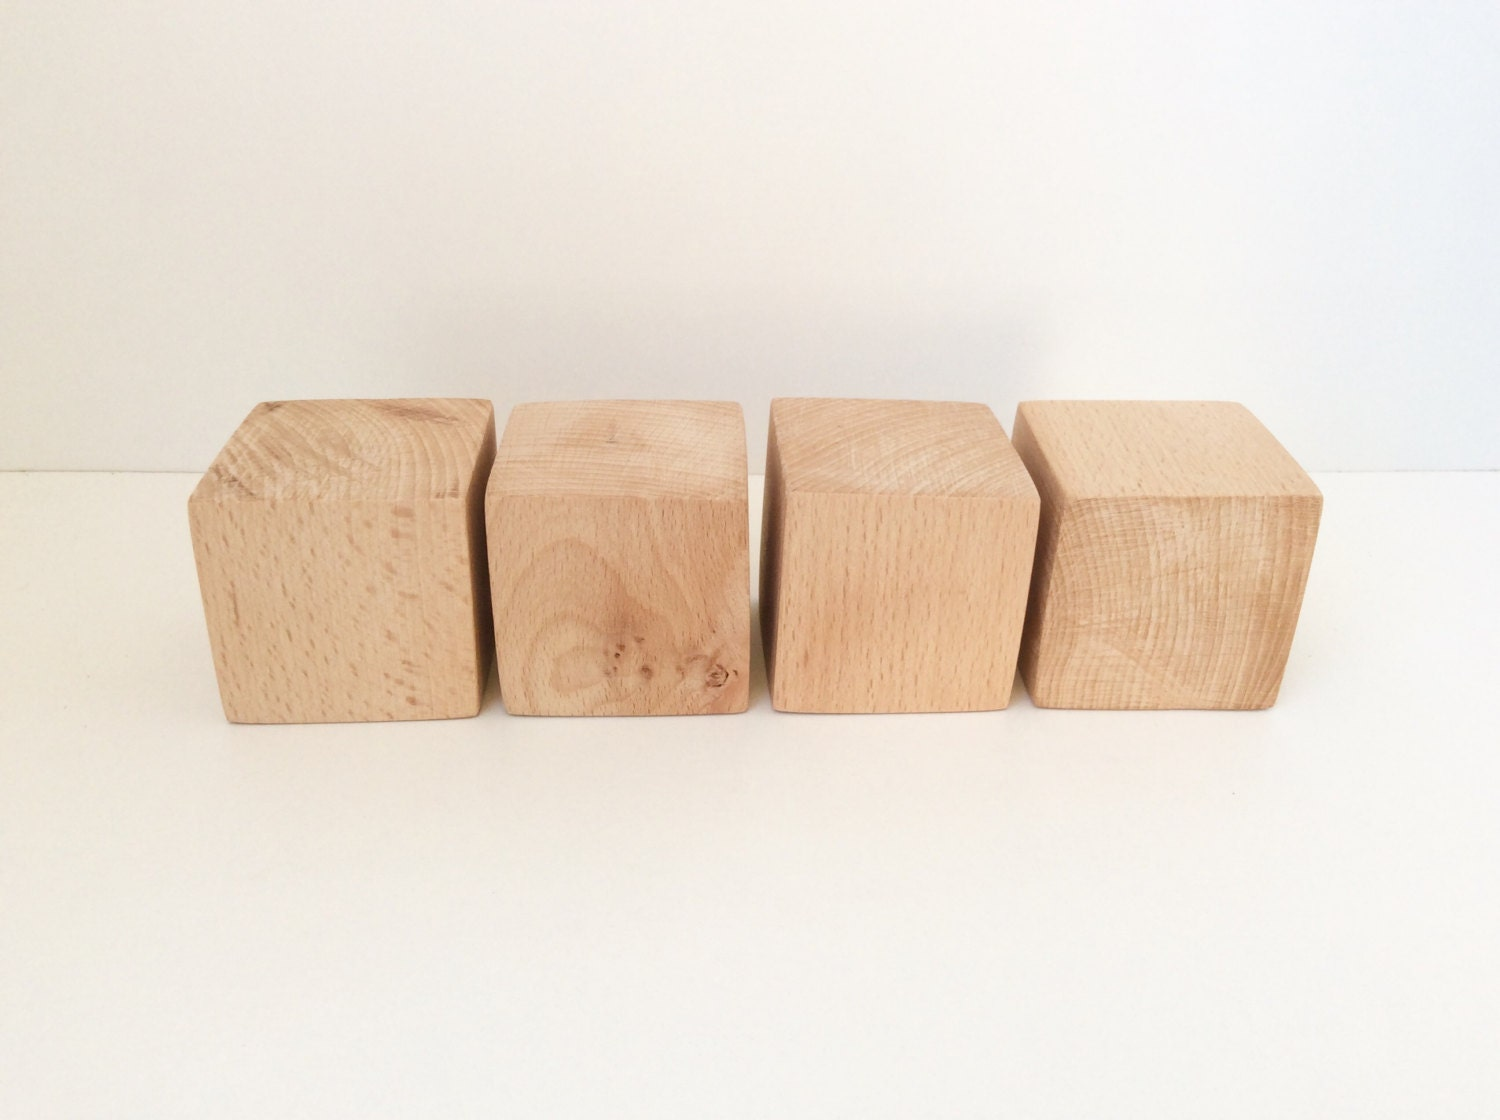 2 wooden blocks unfinished wooden cubes wood crafts for Where to buy wood blocks for crafts